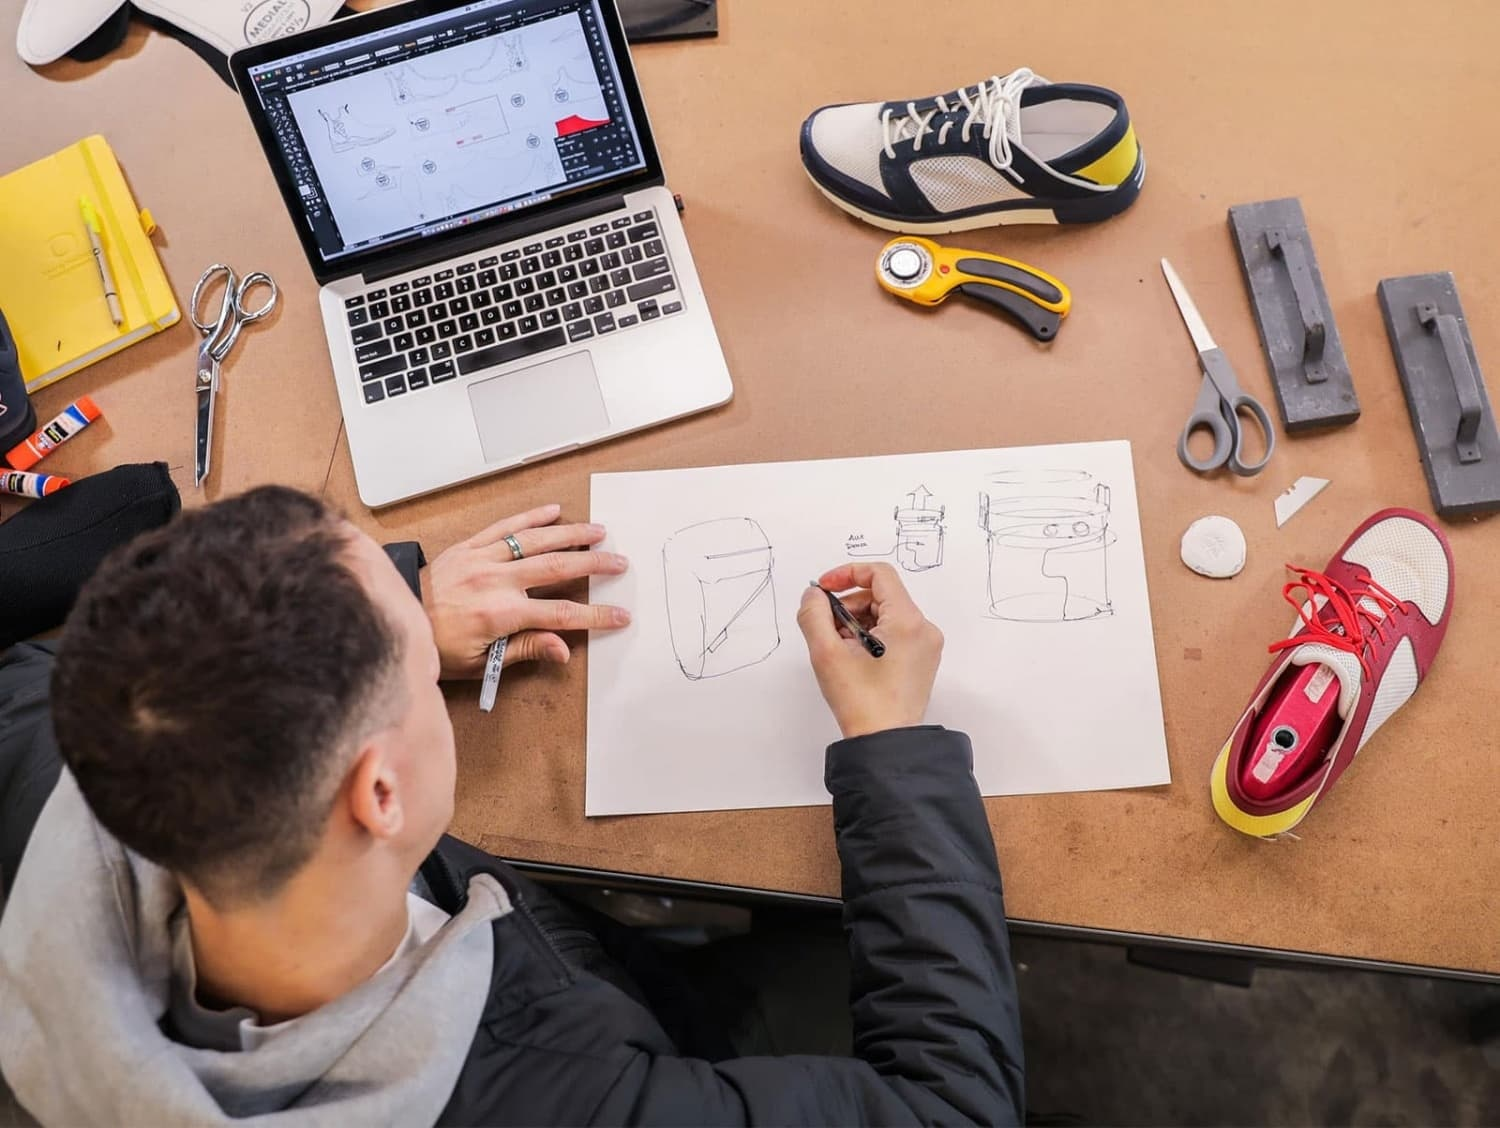 Sports Product Management students sketches a backpack on a work surface with shoes, cutting supplies, and a laptop